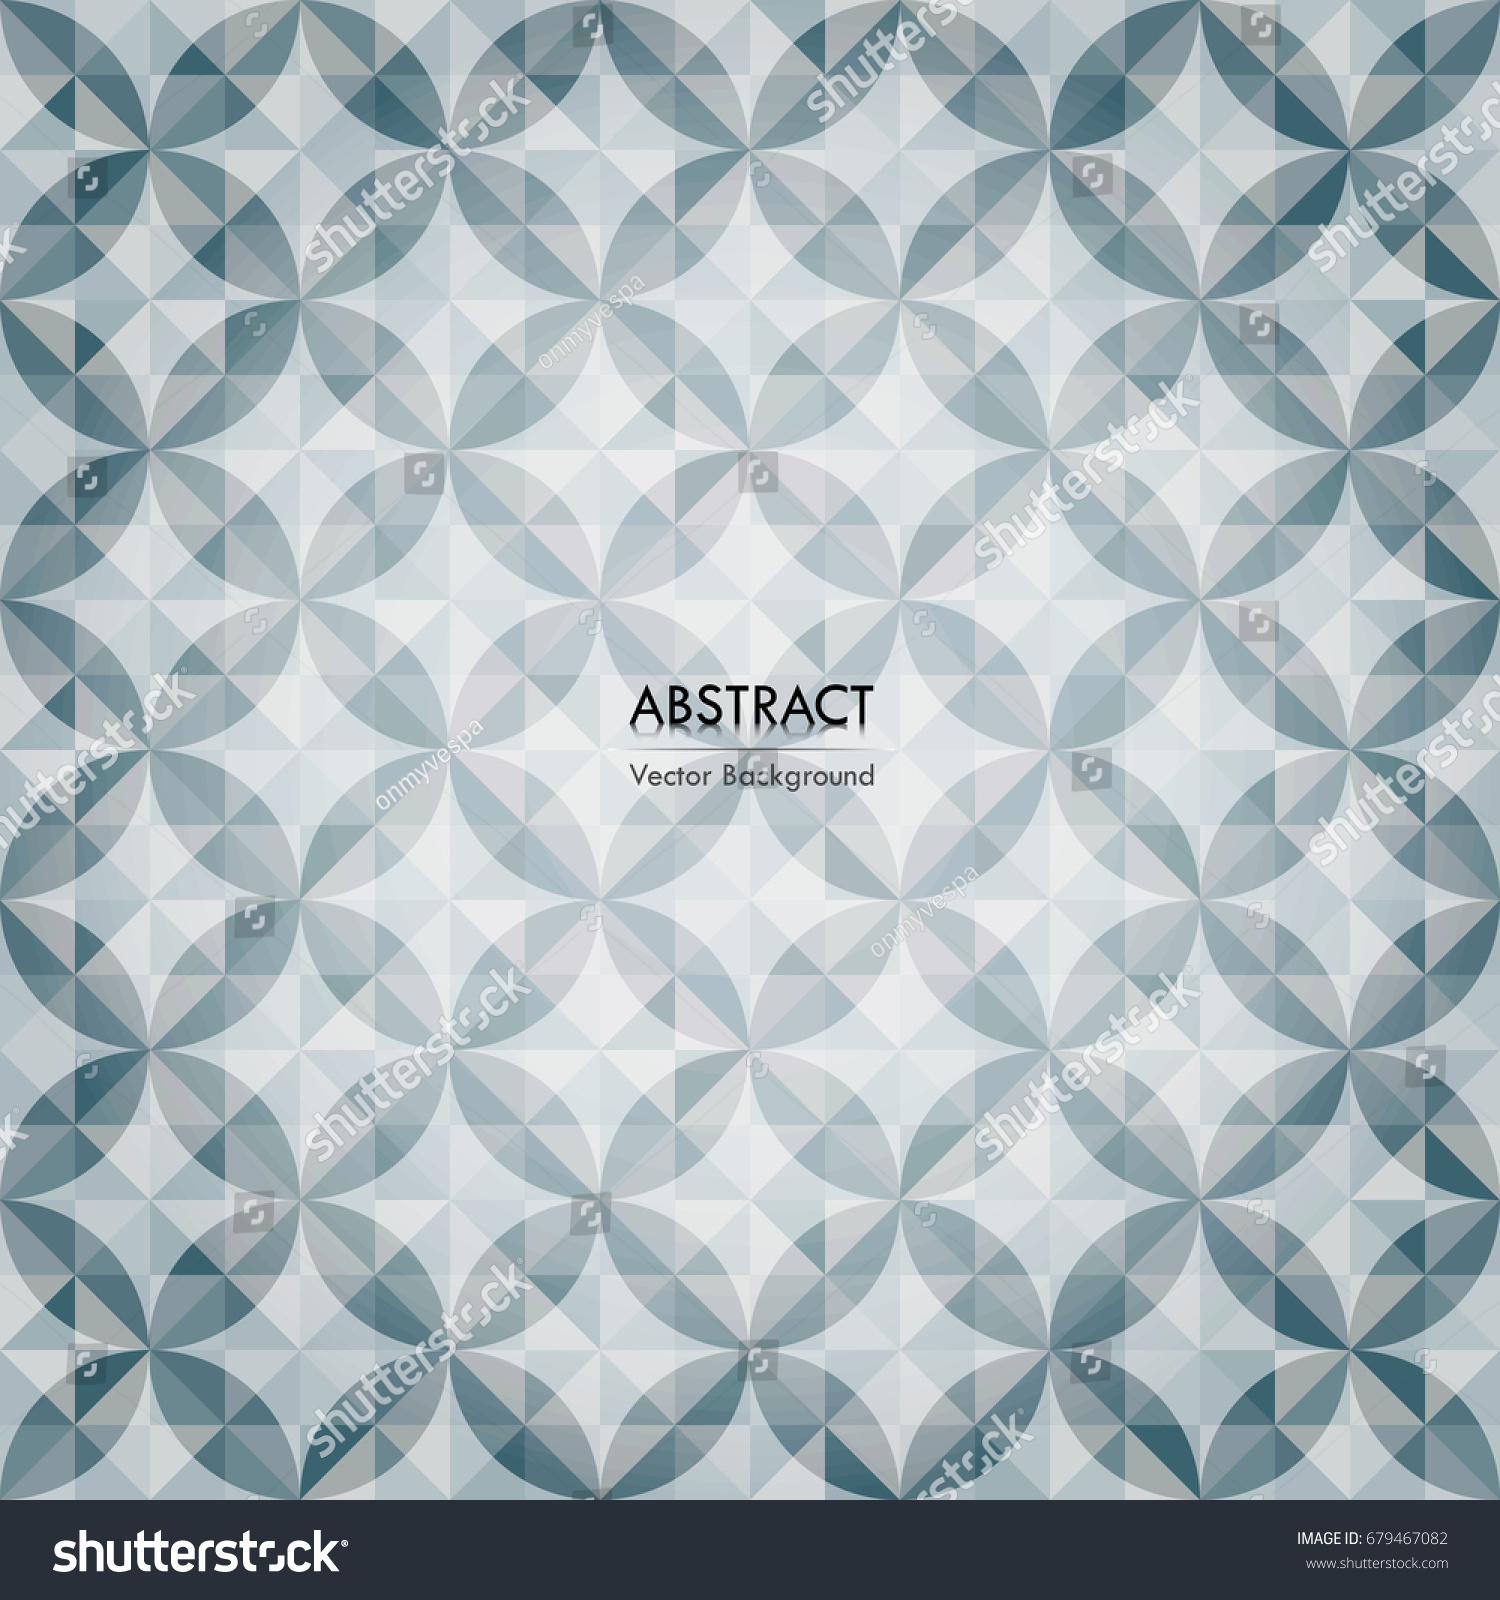 Design Vintage Background Can Be Used Stock Vector 679467082 ... for Vintage Background Patterns For Websites  75sfw